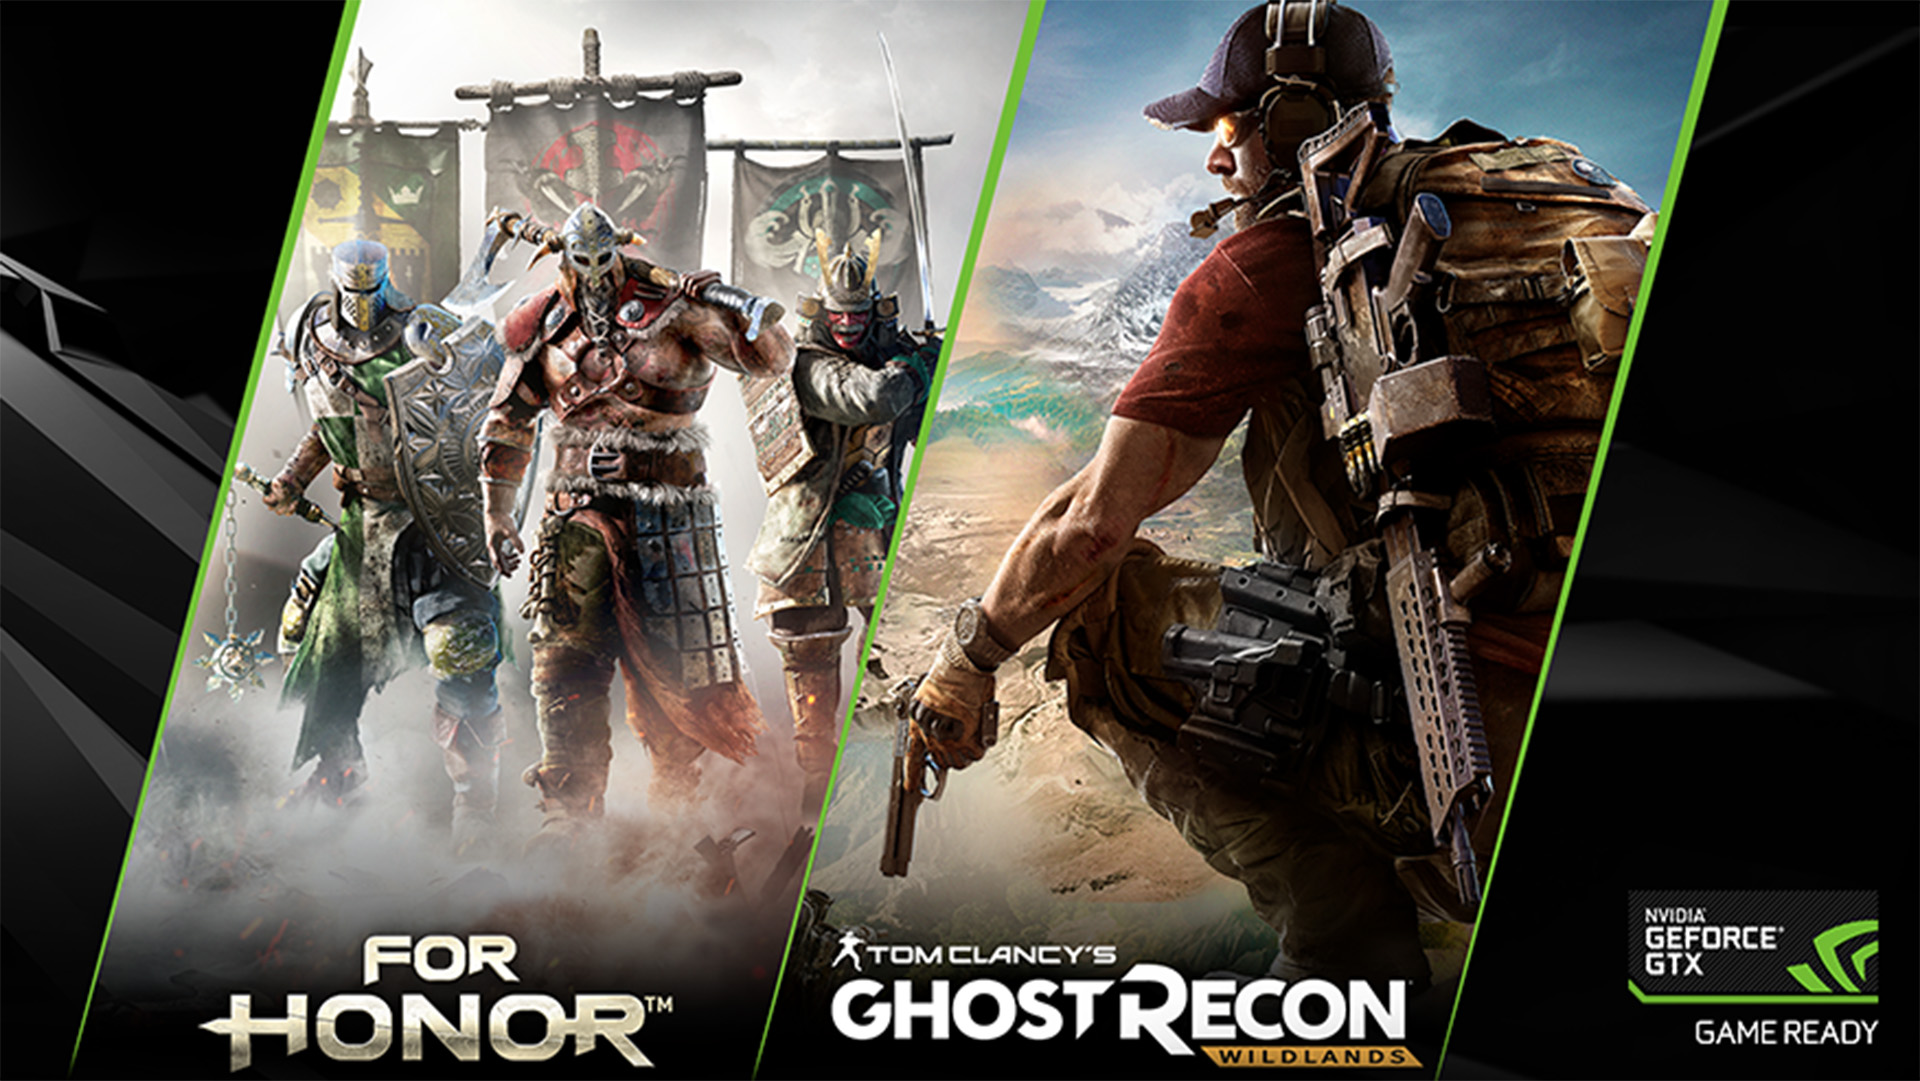 《For Honor》與《Ghost Recon:Wildlands》二選一,加入 GeForce GTX 1060 和 GeForce GTX 1080 Ti